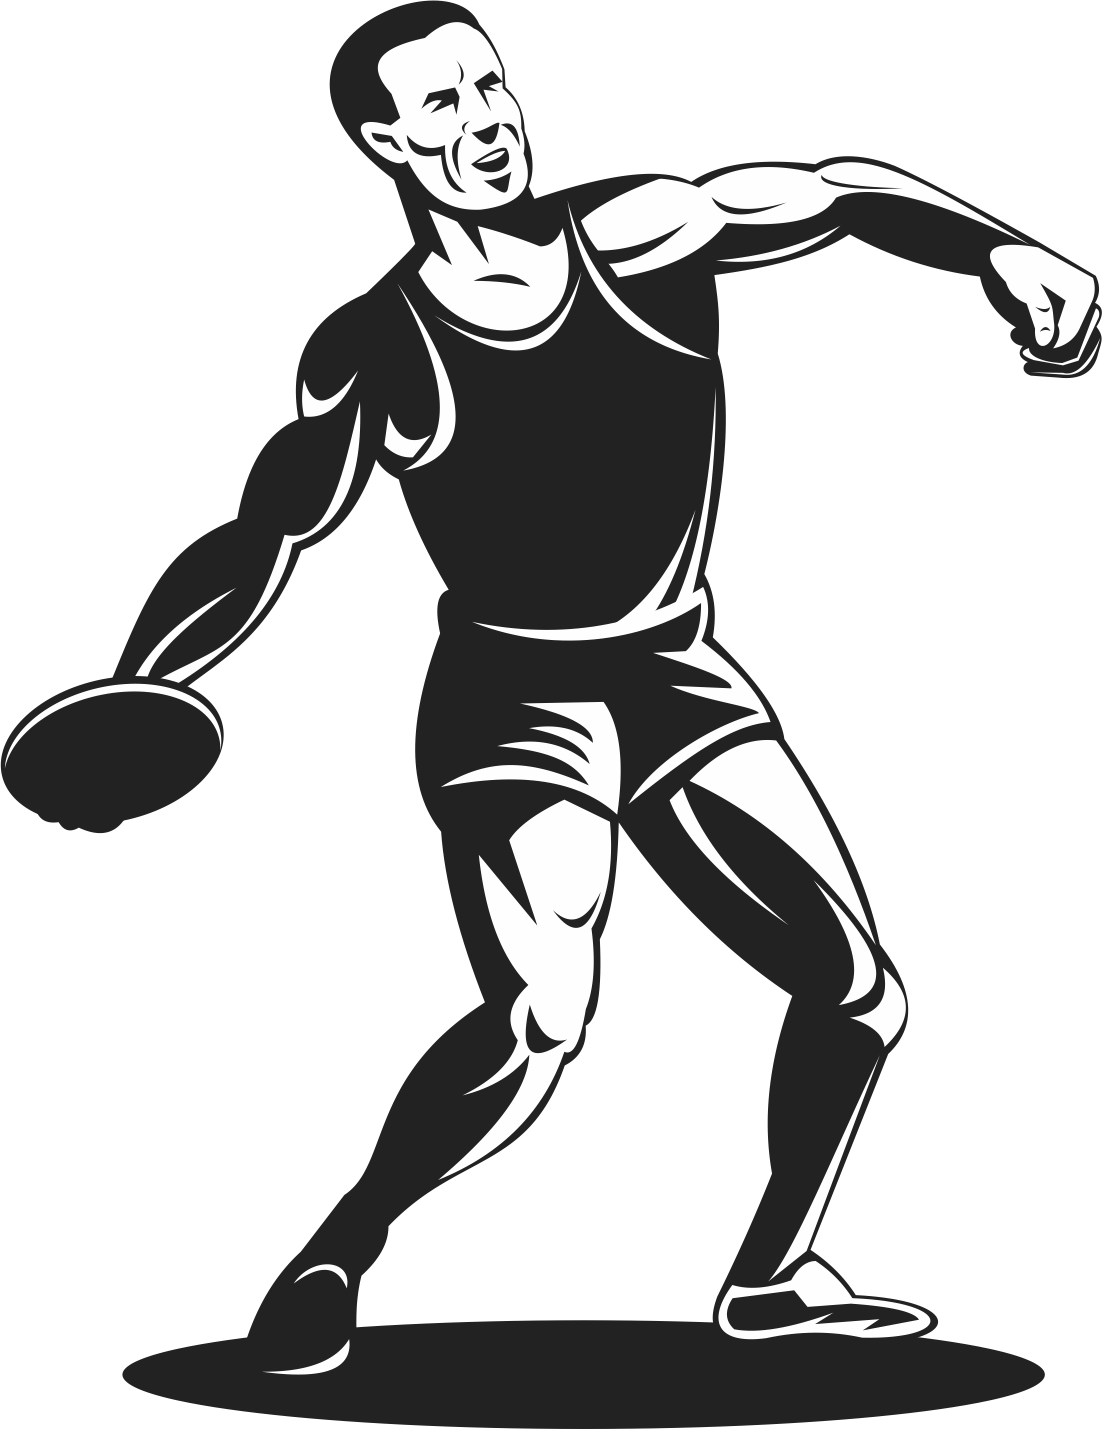 Throw athlete track and. Sports clipart discus